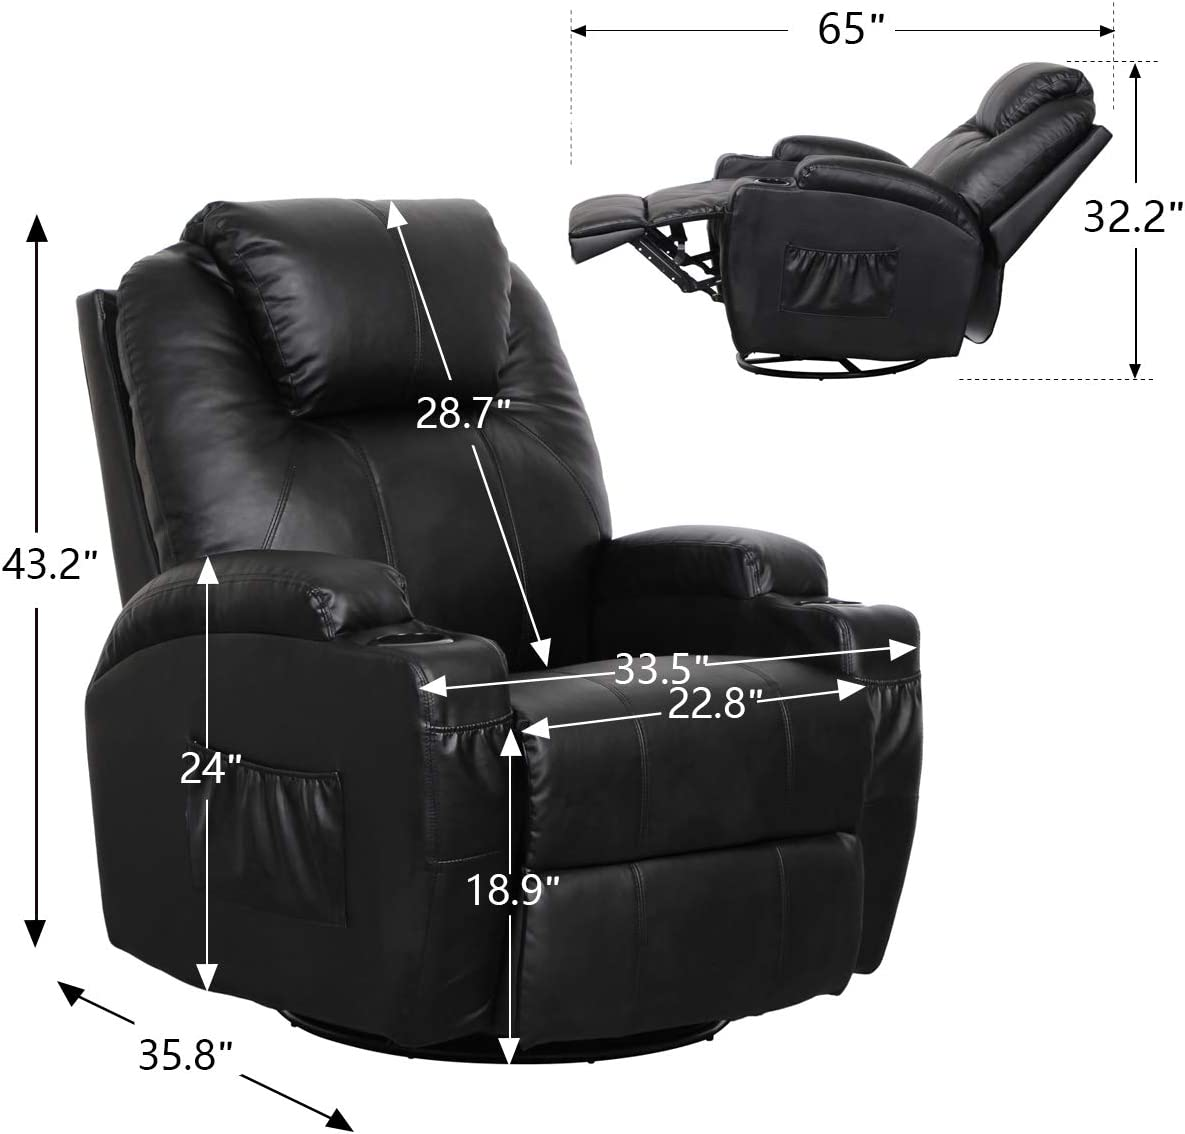 Esright Recliner Lounge Chair dimensions